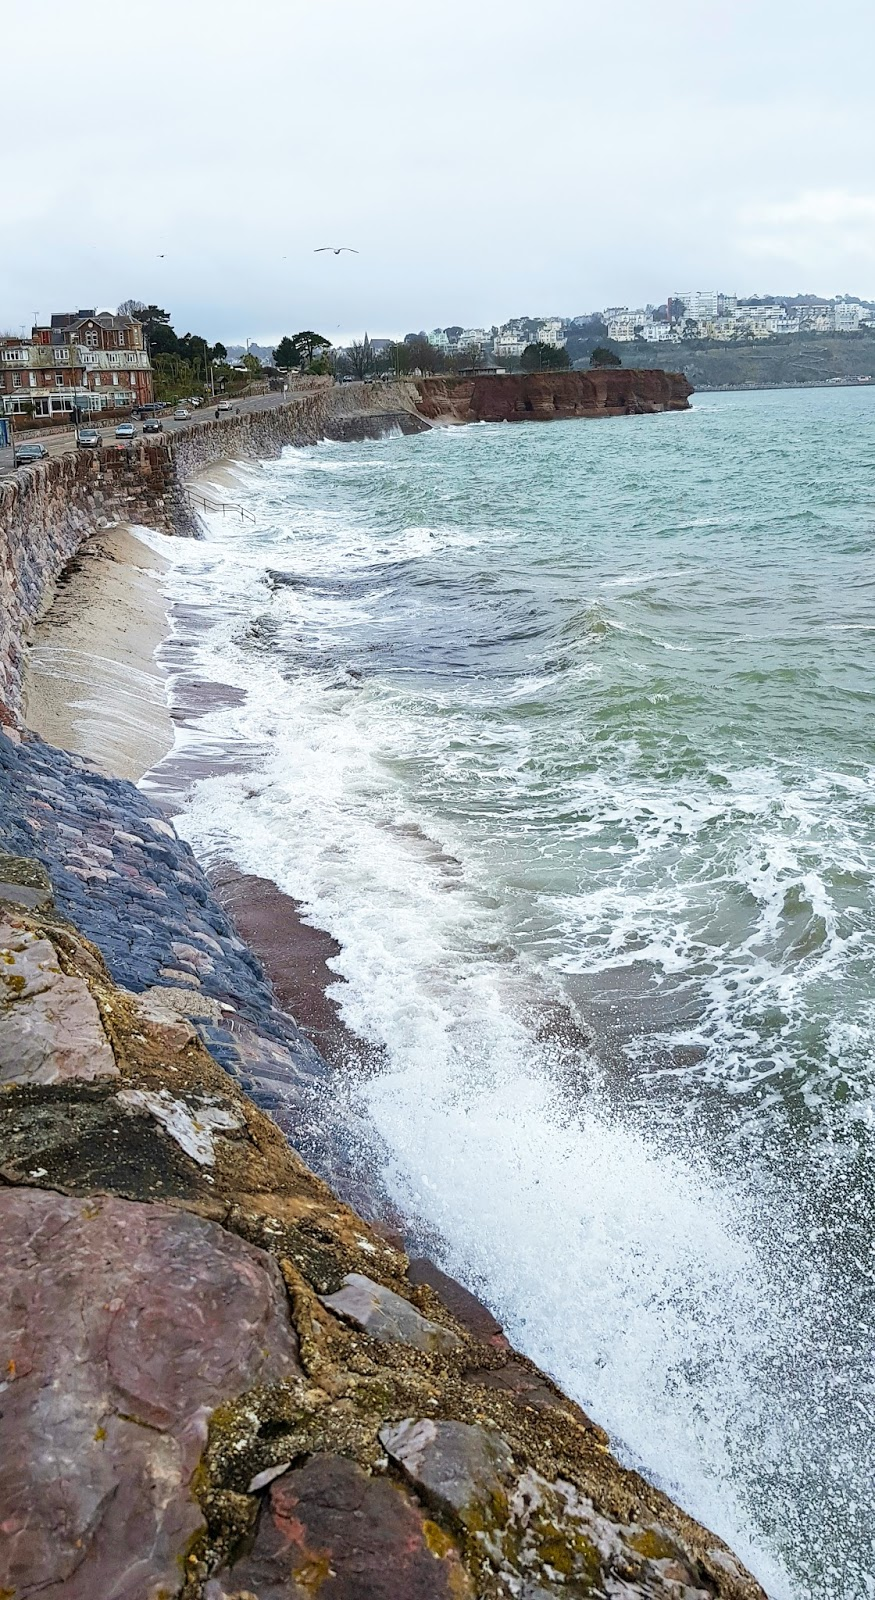 Image showing a rough sea breaking onto the beach at Torquay in Devon, March 2018